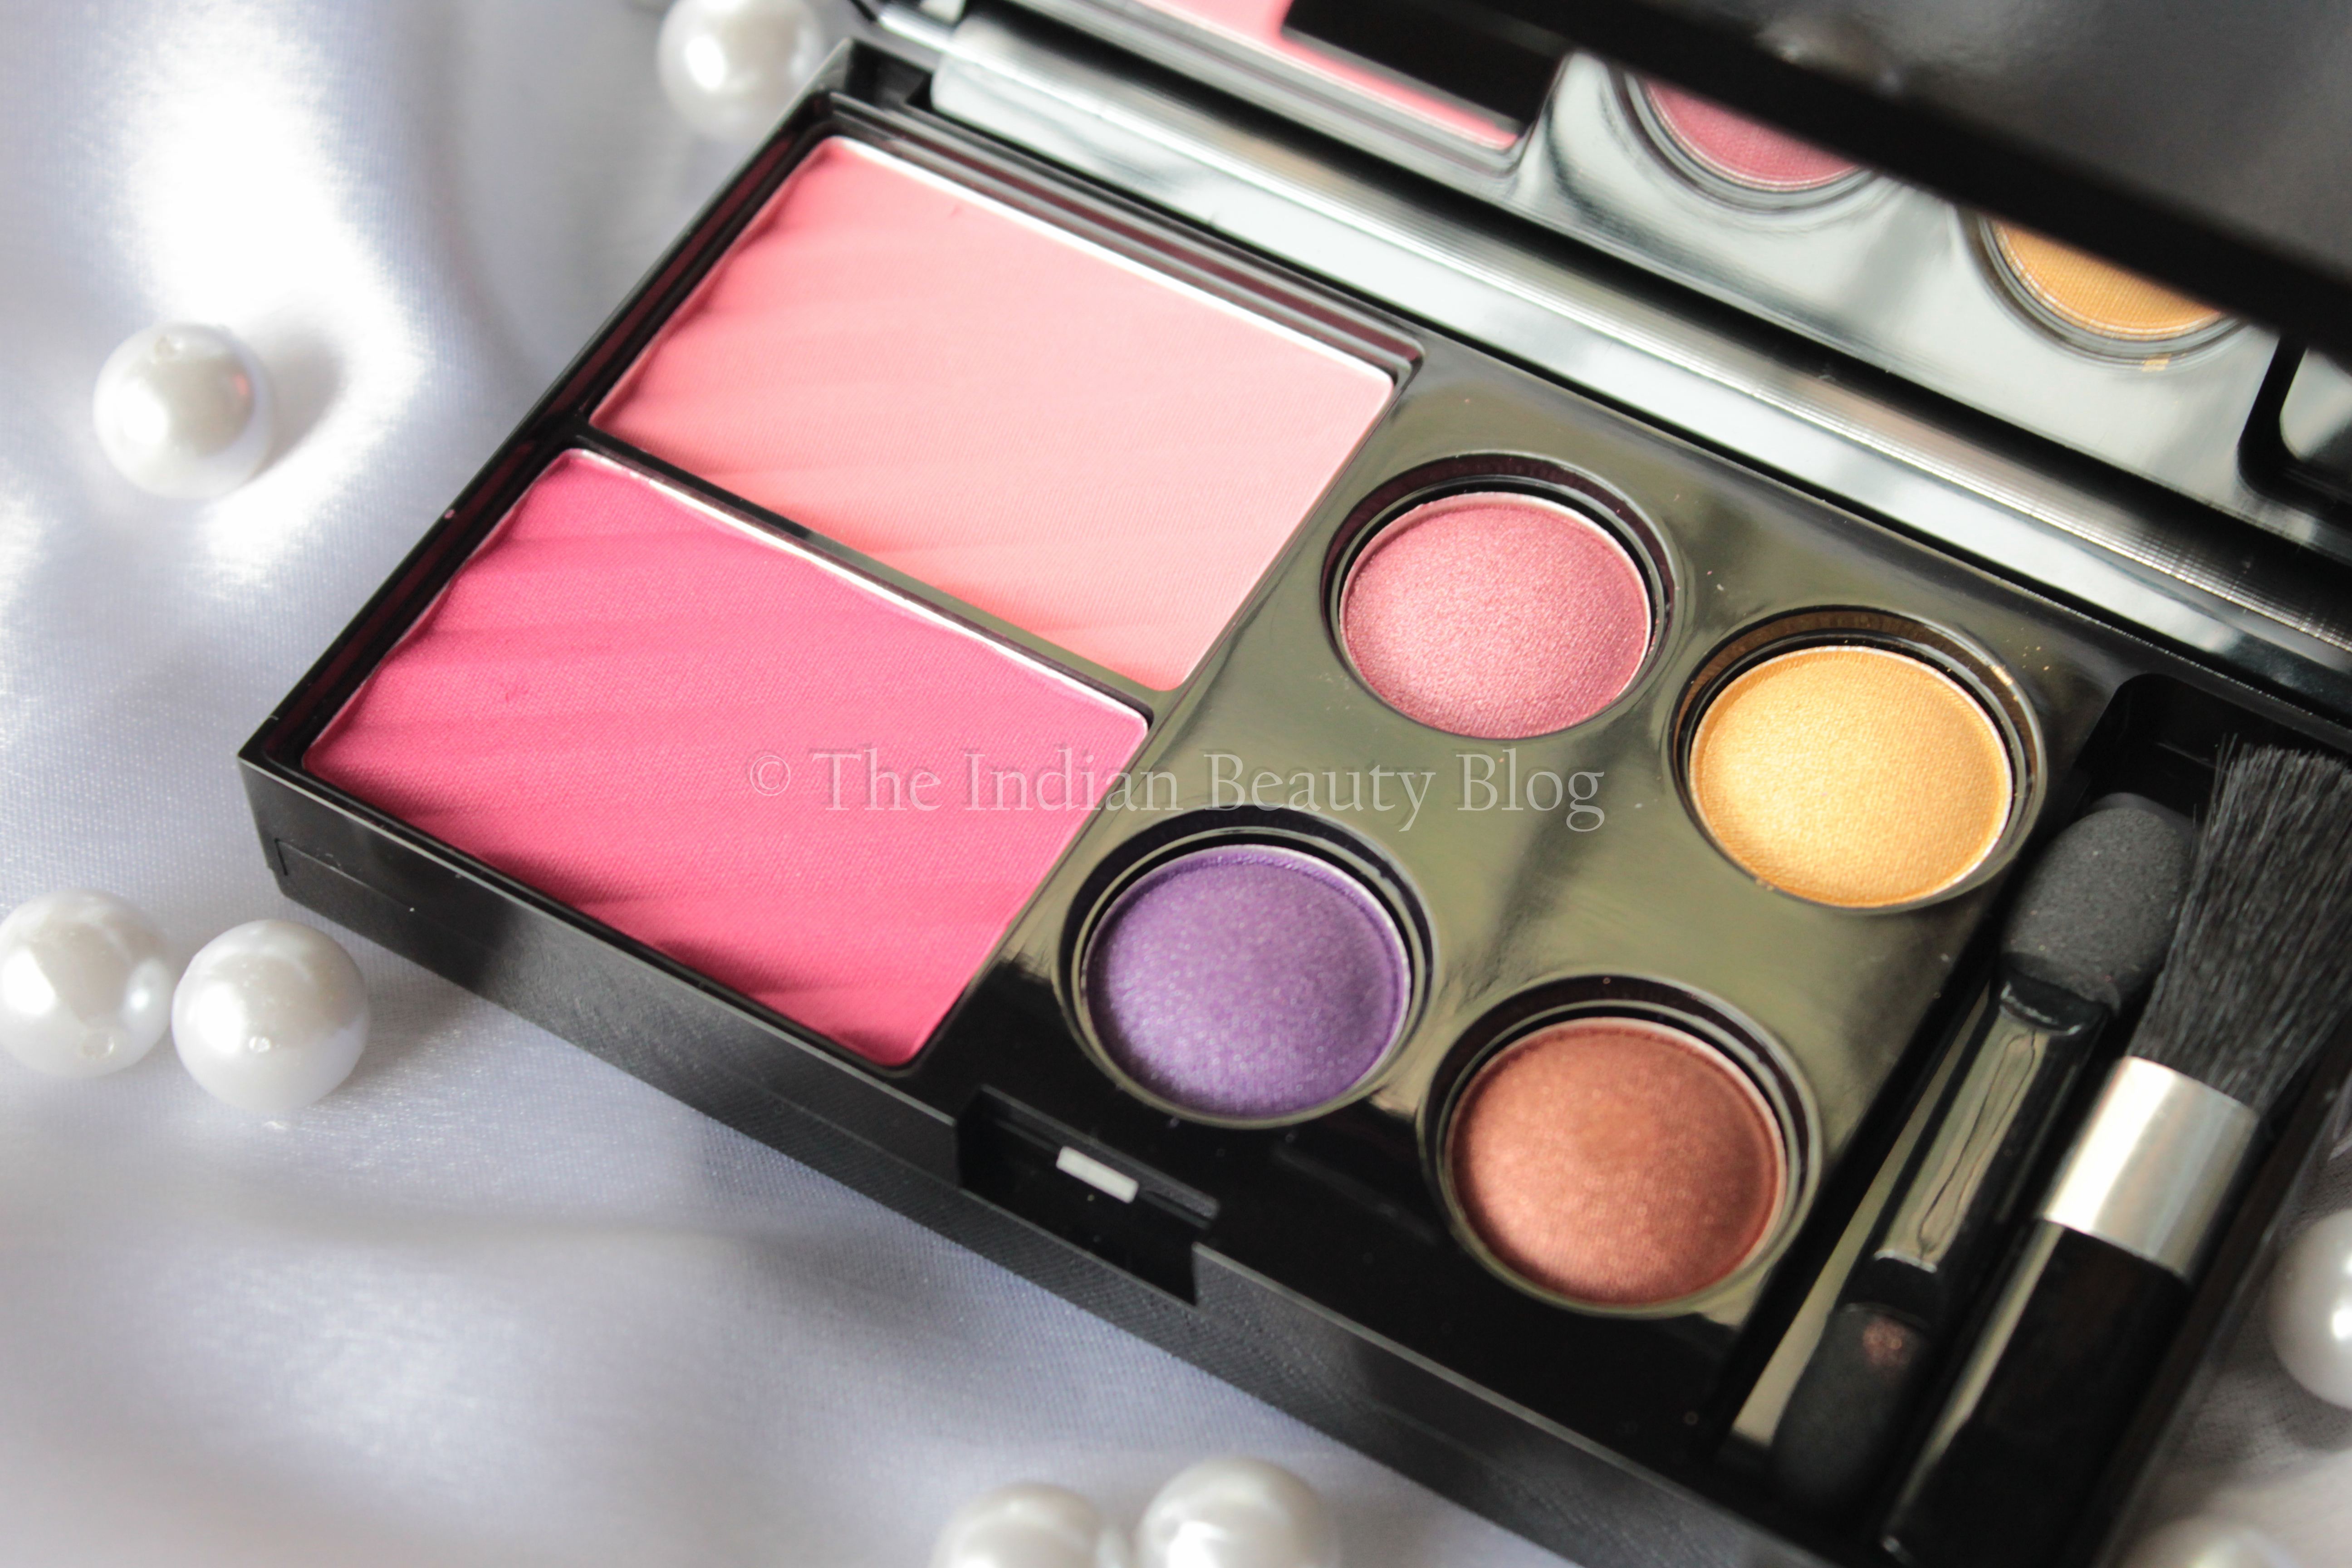 ... colorbar get the look makeup kit alluring beauty